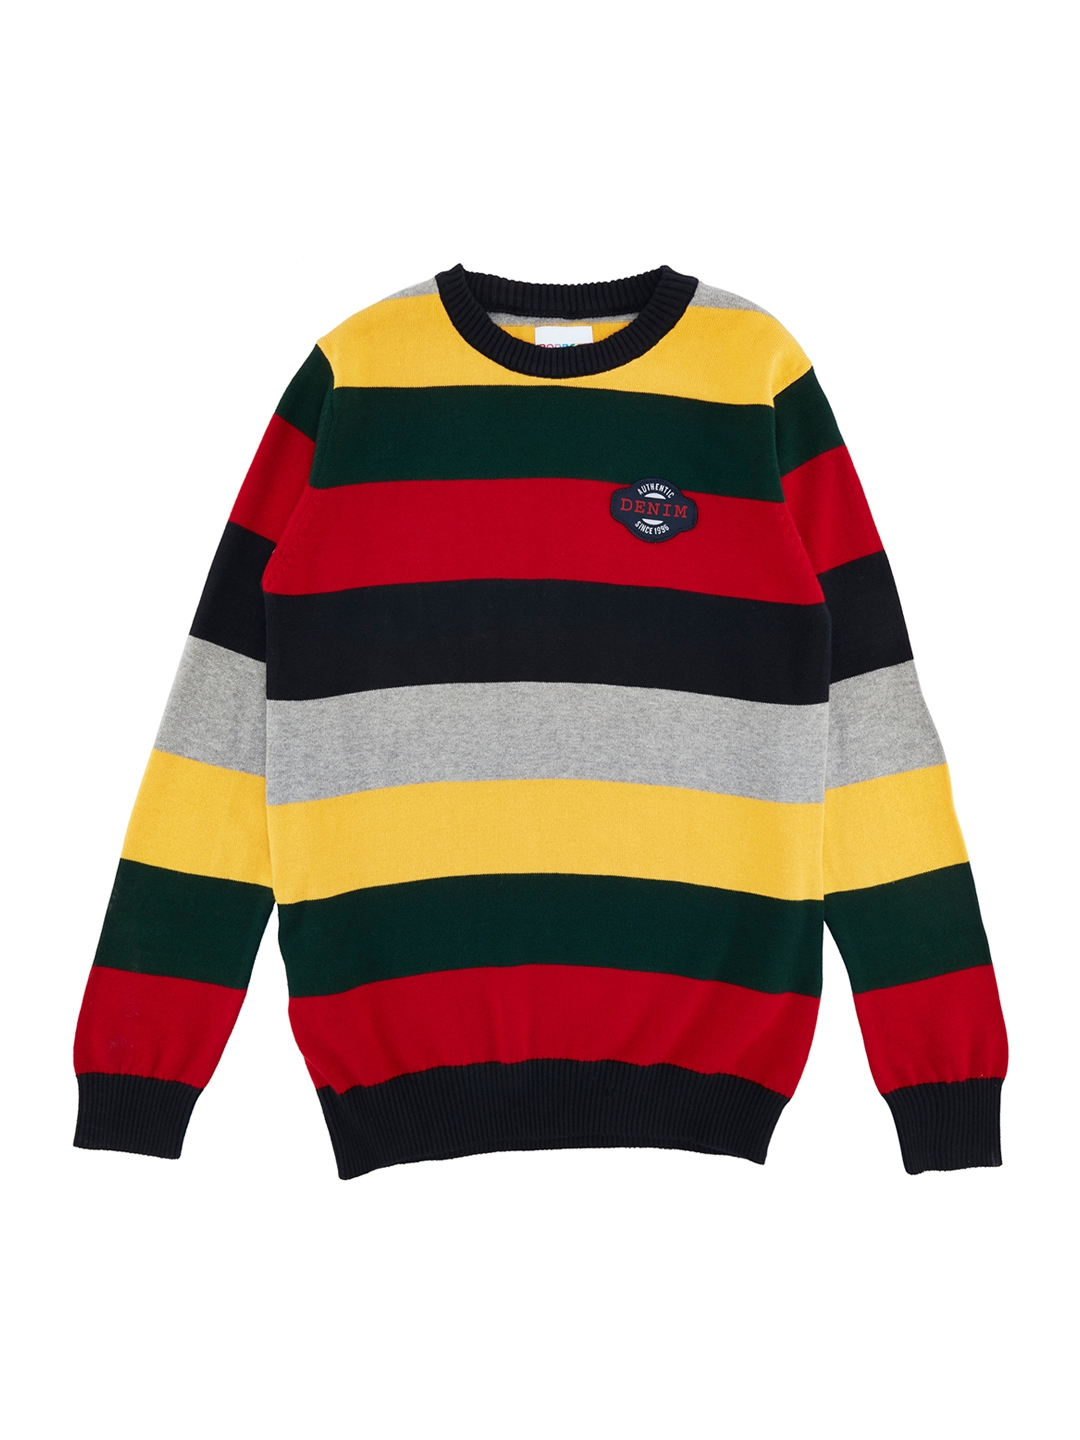 c30b5eed615 Buy POPPERS By Pantaloons Boys Multicoloured Striped Sweater ...